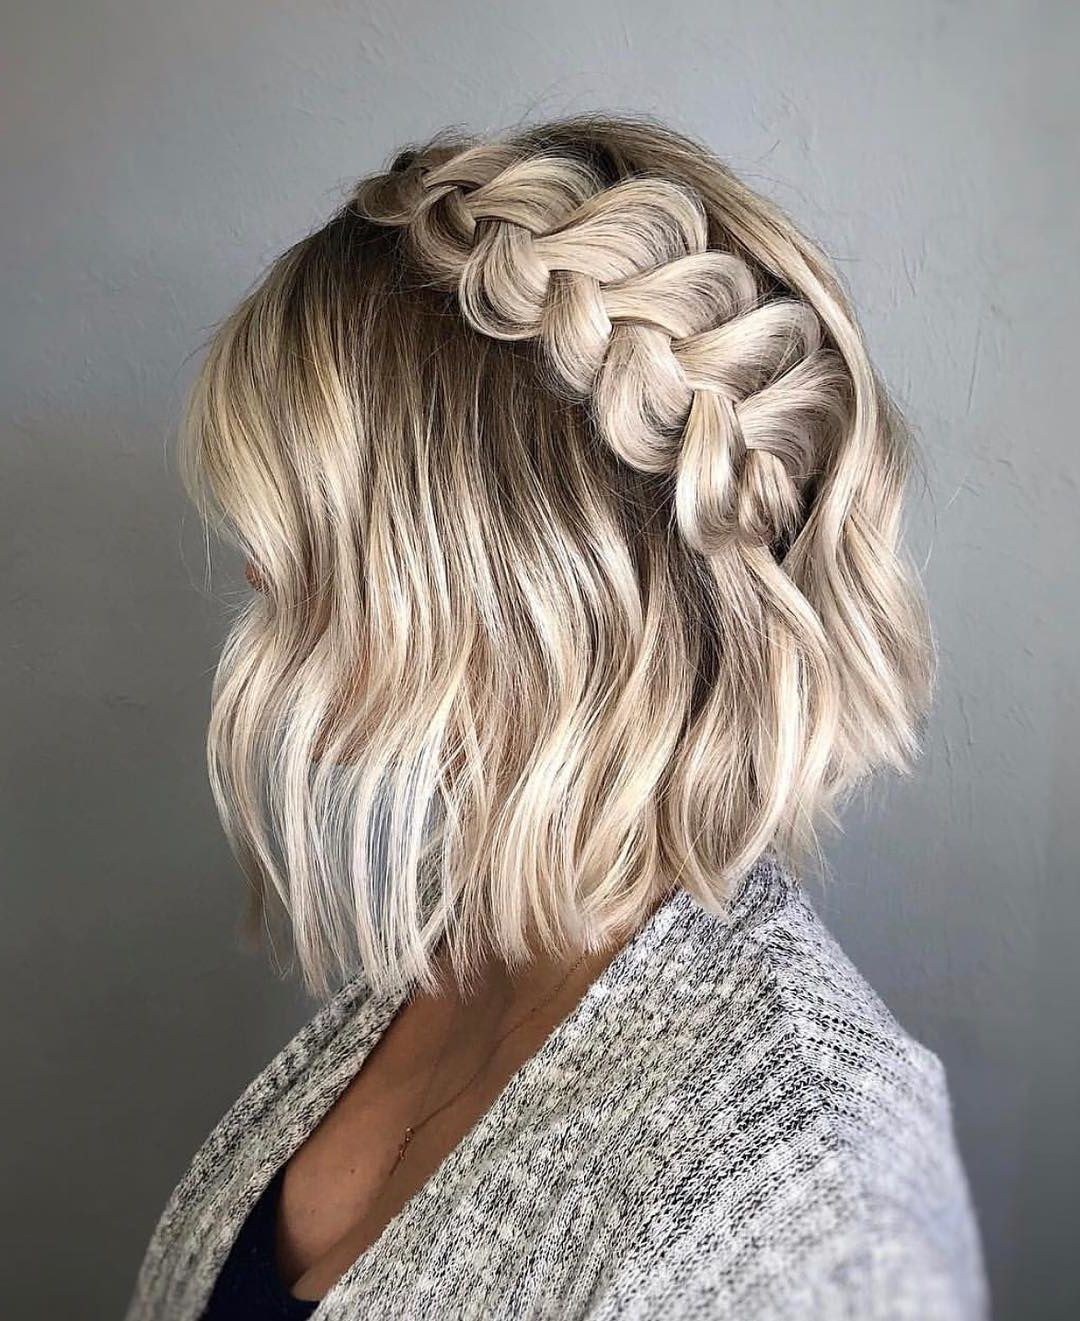 50 Awesome Jazzed Up Fishtail Braid Hairstyles With Hairstyle Hair Styles Medium Hair Styles Fishtail Braid Hairstyles